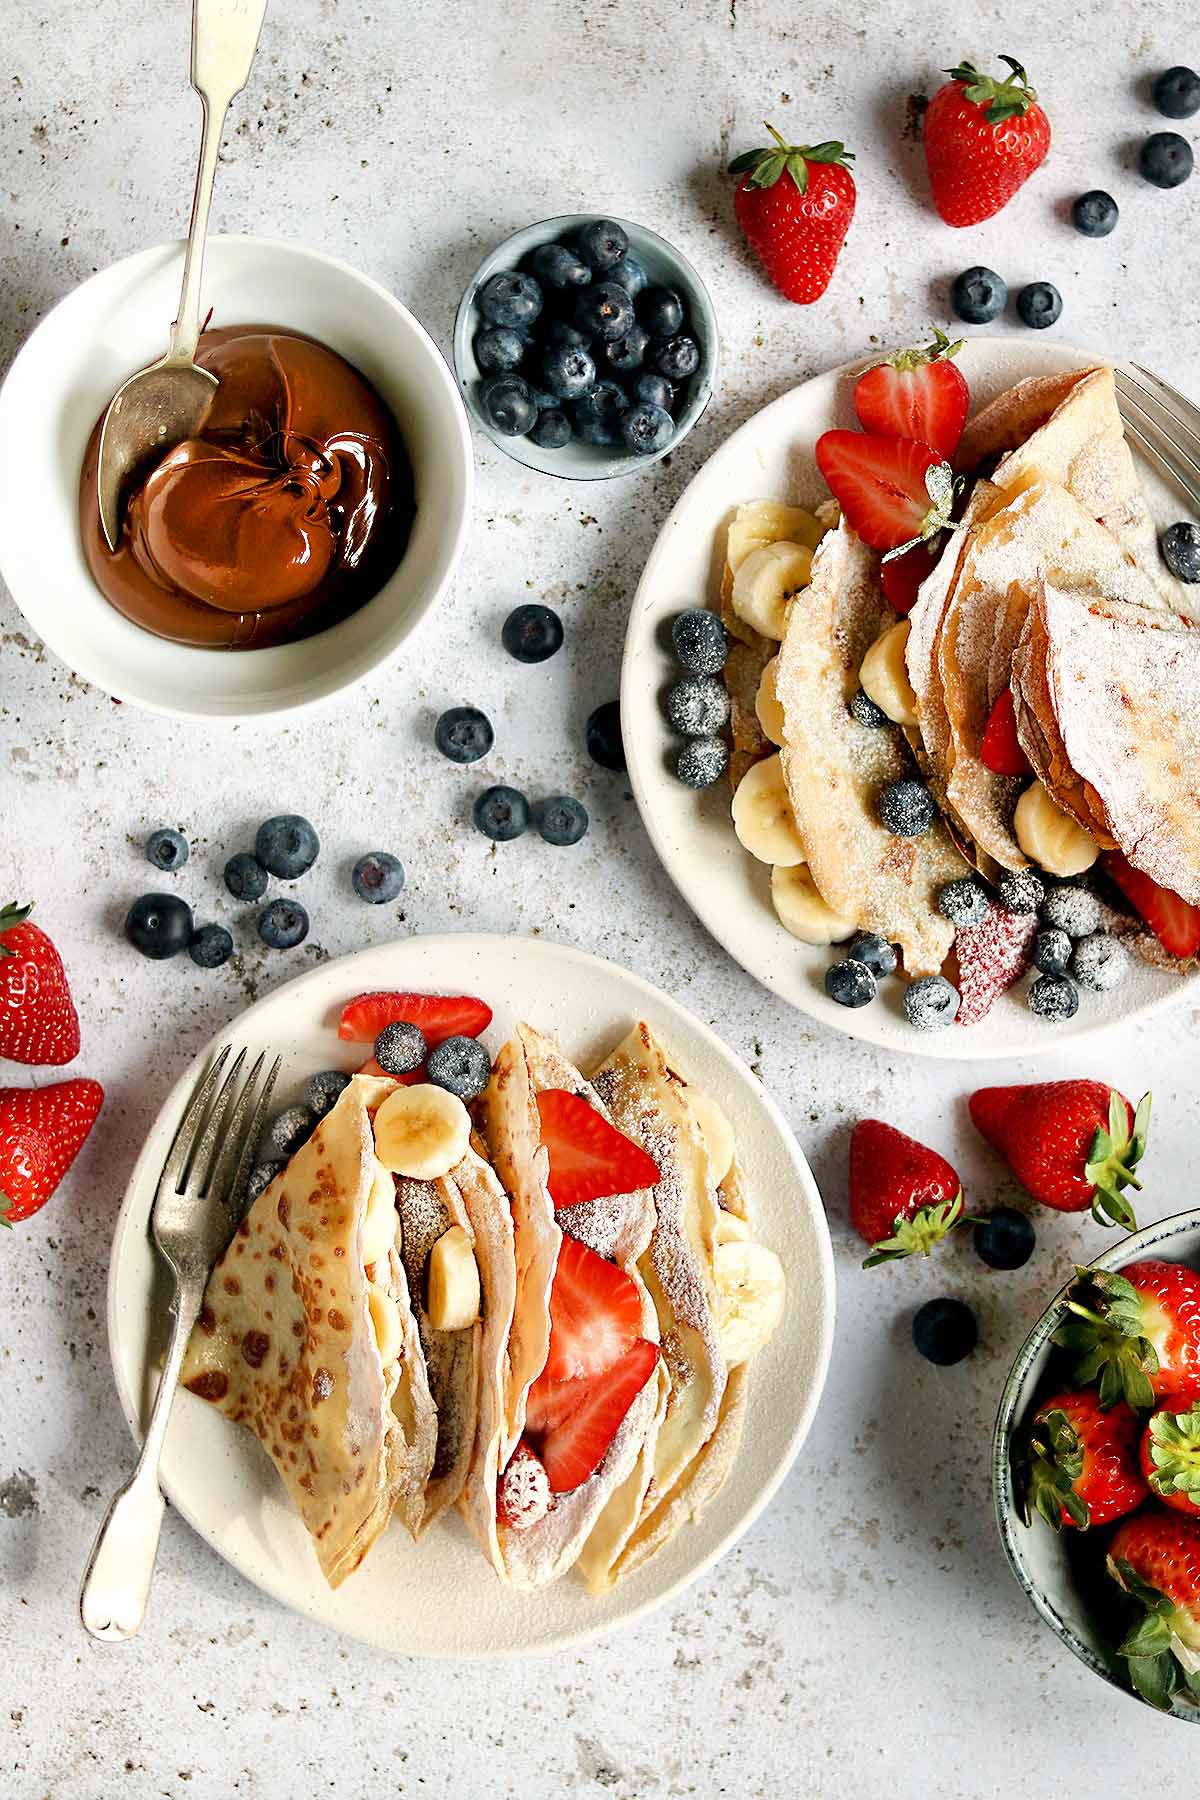 Pancakes with banana, strawberries, blueberries and Nutella filling